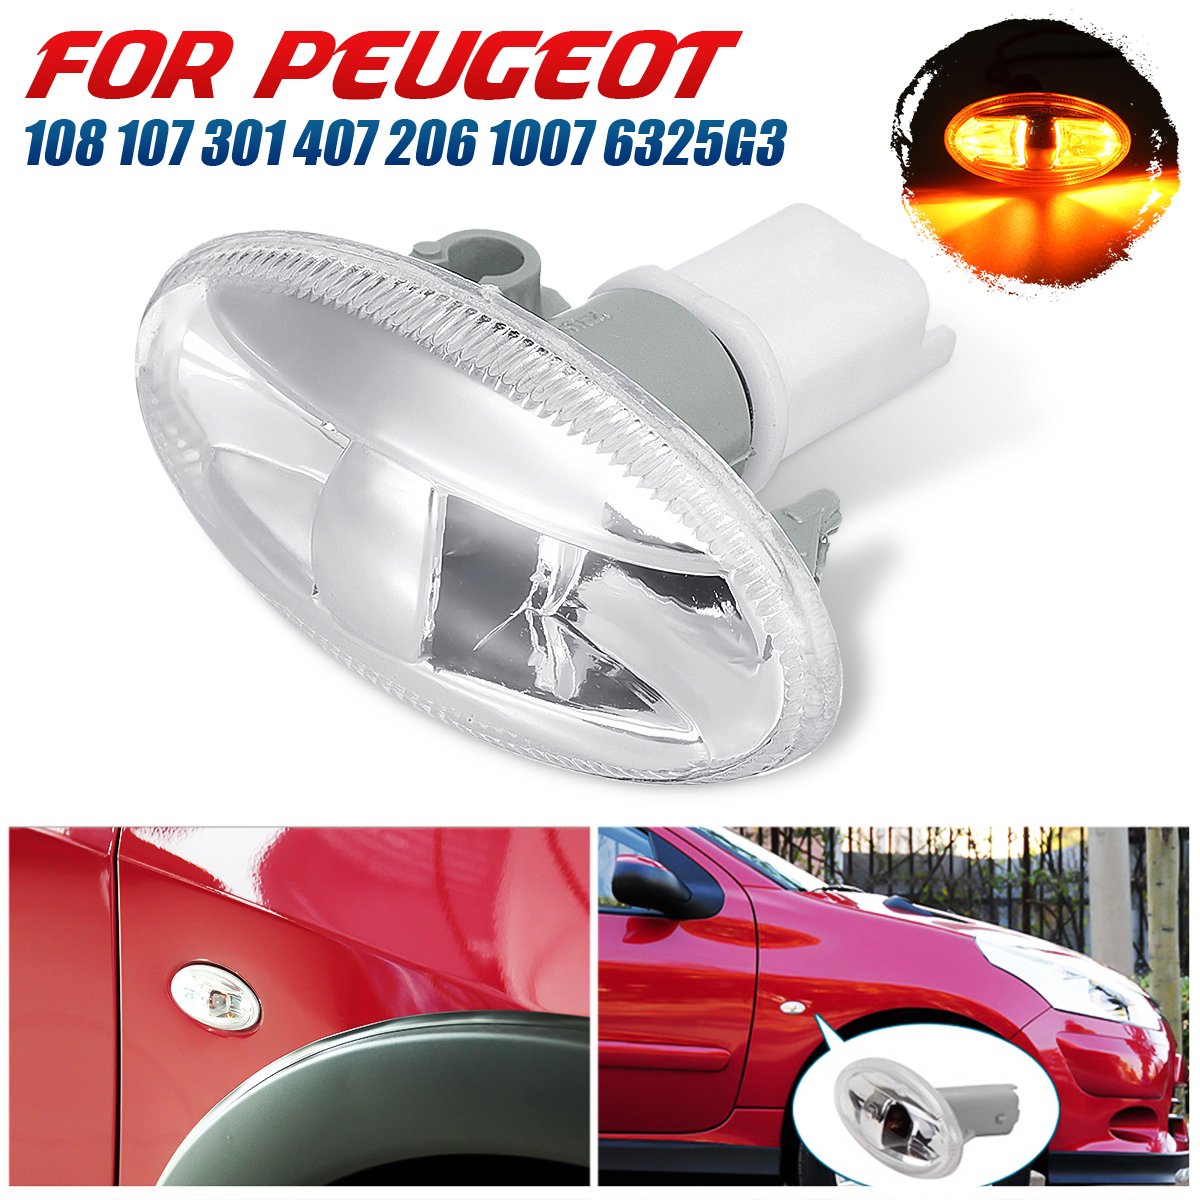 New Car Partner Side Indicator Repeater Light <font><b>Lamp</b></font> For <font><b>Peugeot</b></font> 108 107 <font><b>407</b></font> 206 1007 VU 301 108 <font><b>407</b></font> High Quality image